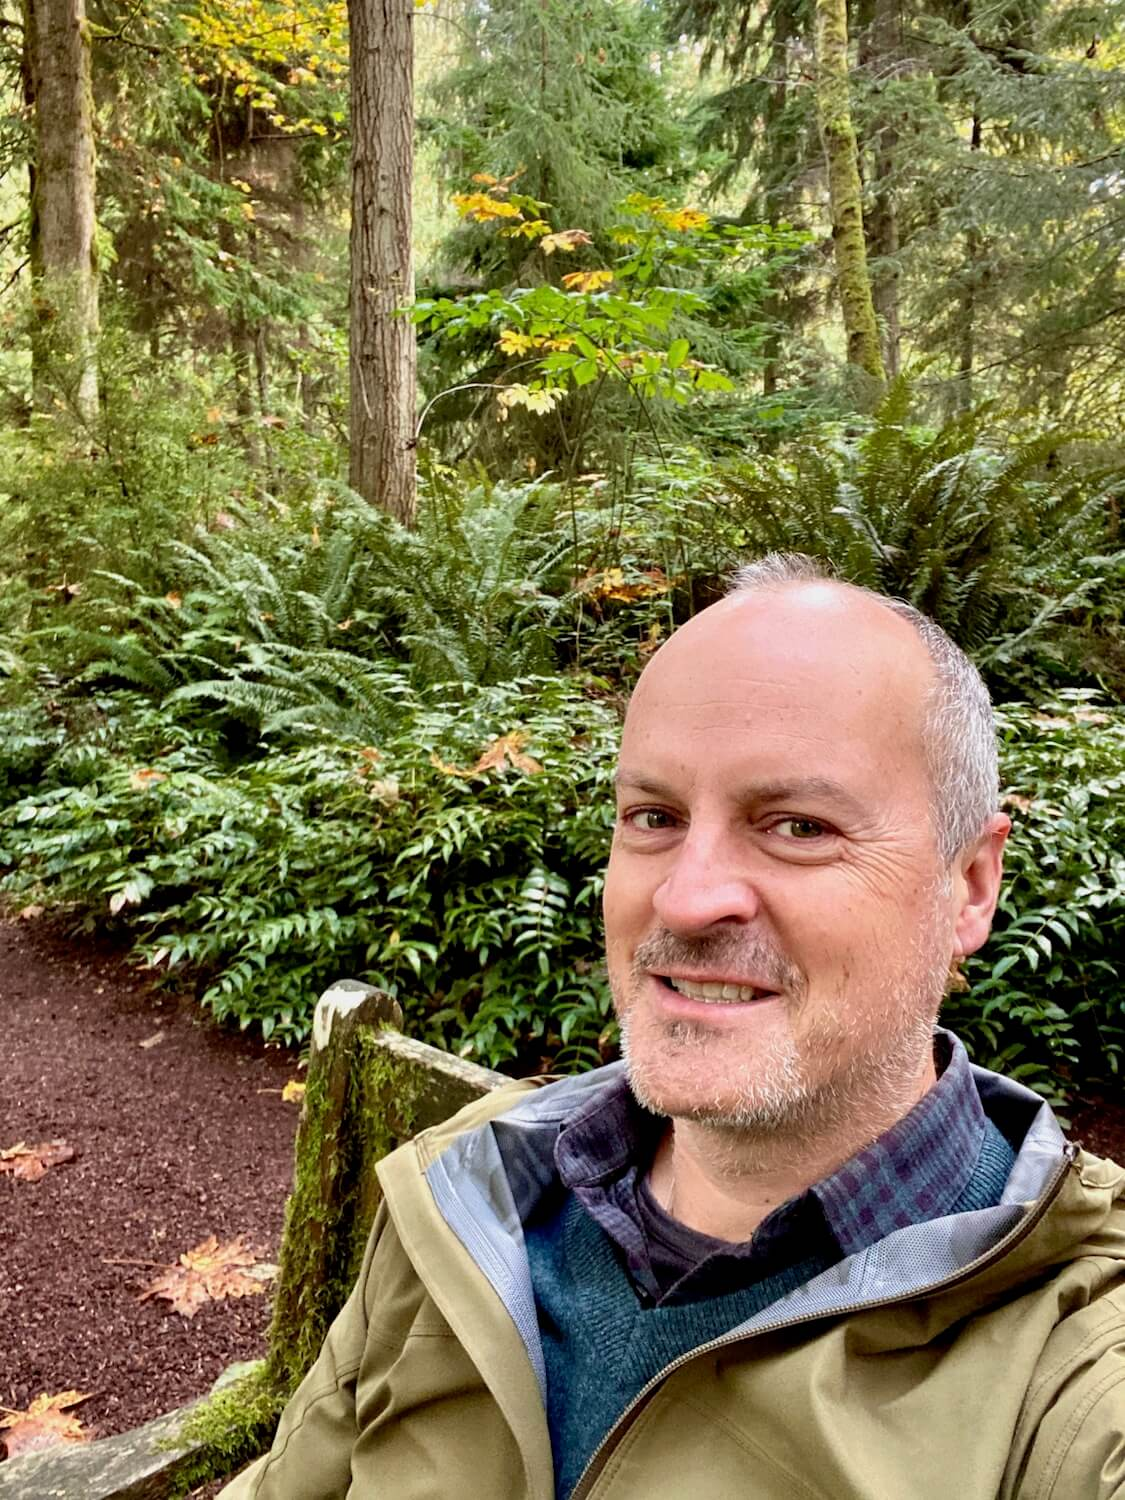 Matthew Kessi sits at a moss covered bench in amongst a woods setting, with green sword fern and low Pacific Northwest forest brush in the background. There is a bark dust trail behind him.